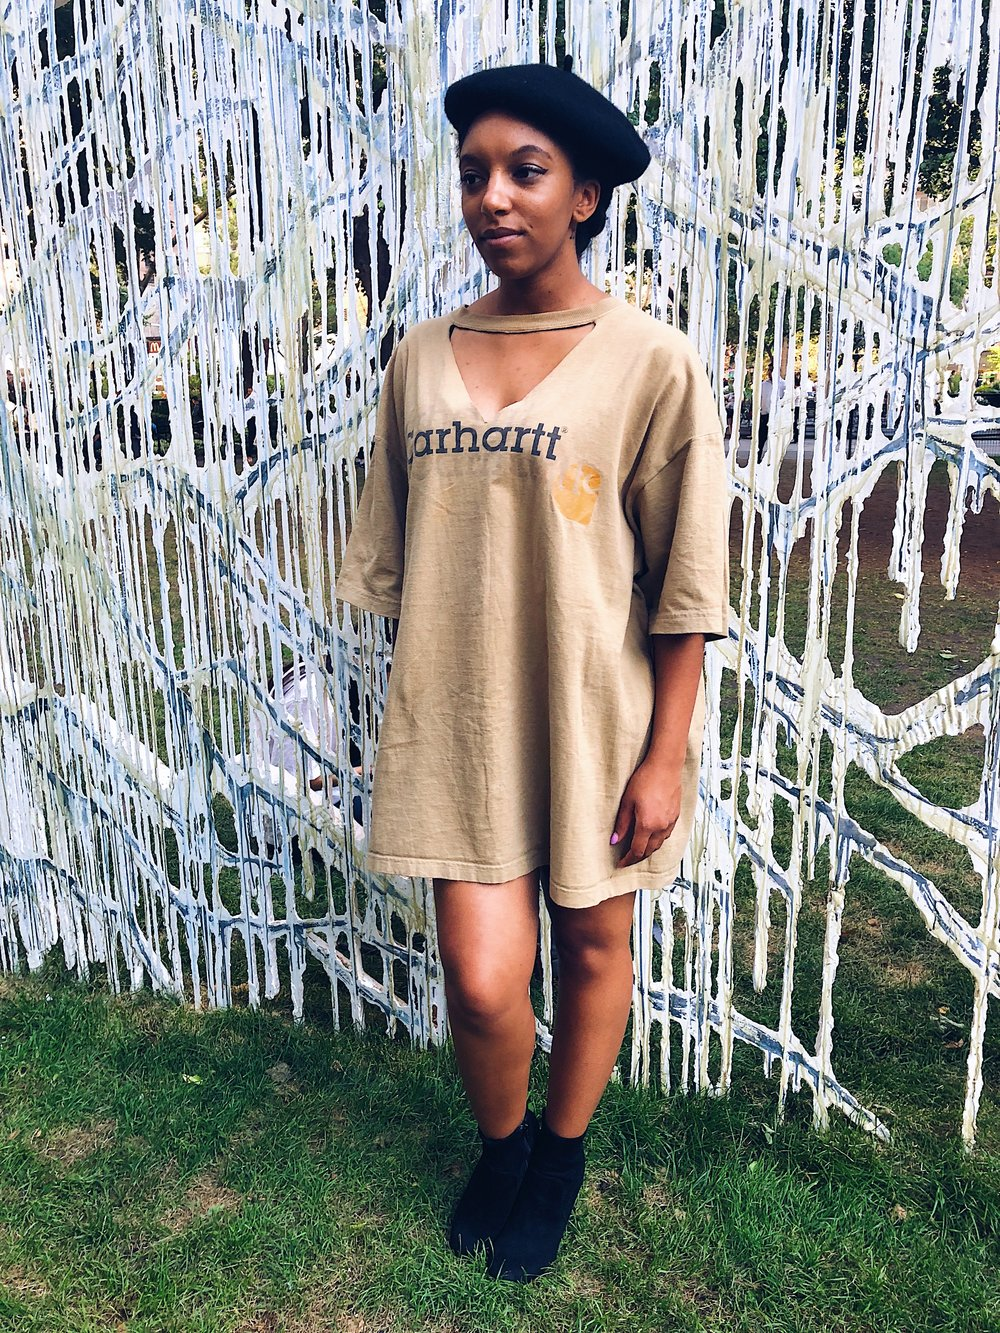 J'na in the Reworked Carhartt Dress.